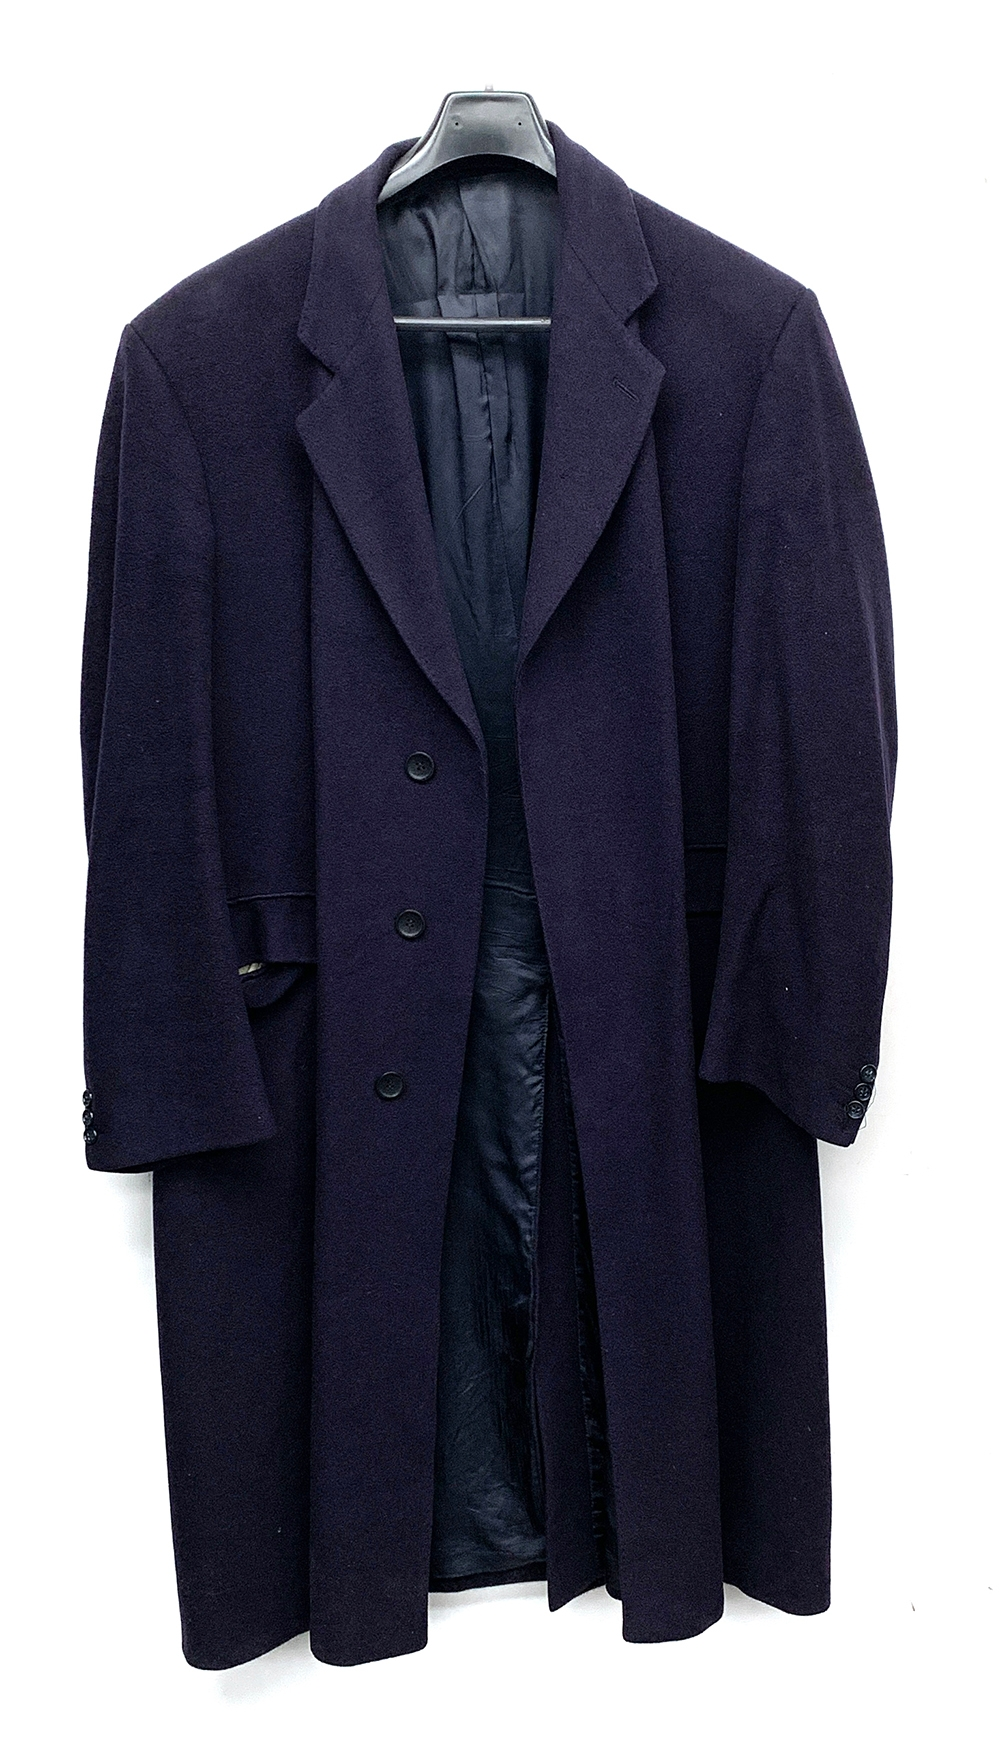 """A Berwin & Berwin for Harrods cashmere overcoat, 46"""" chest, some wear"""